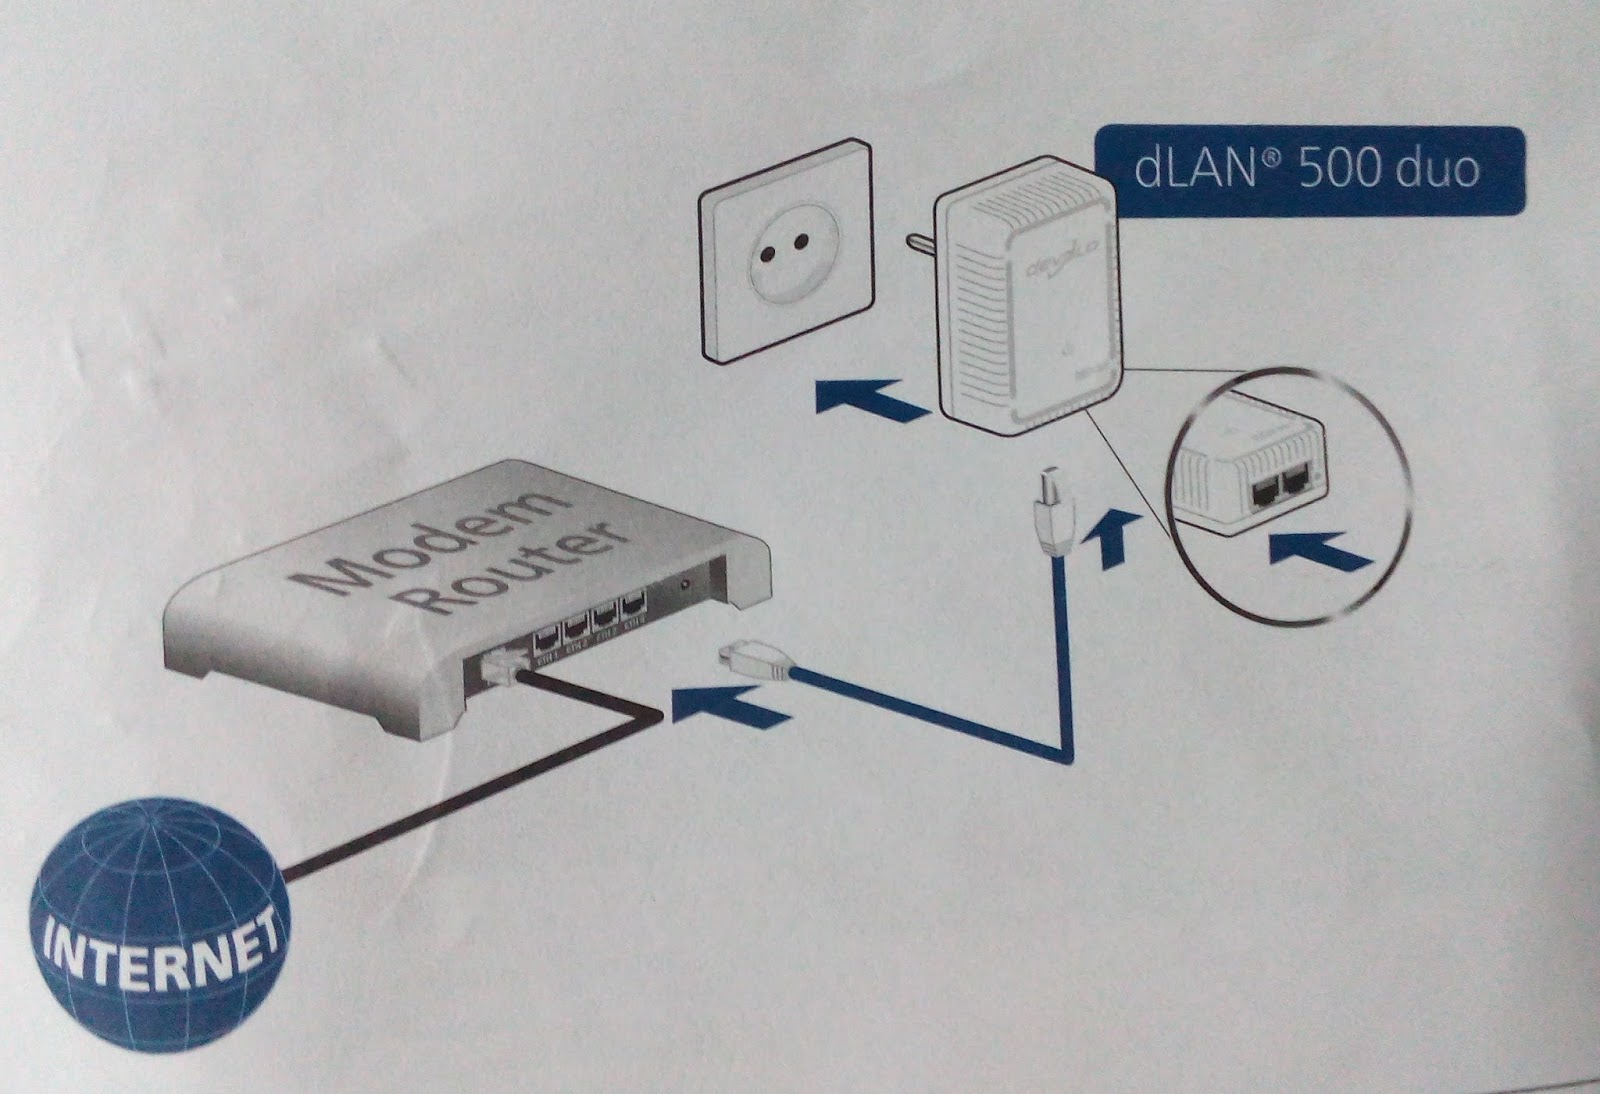 how to configure devolo dlan 500 wifi router may i. Black Bedroom Furniture Sets. Home Design Ideas